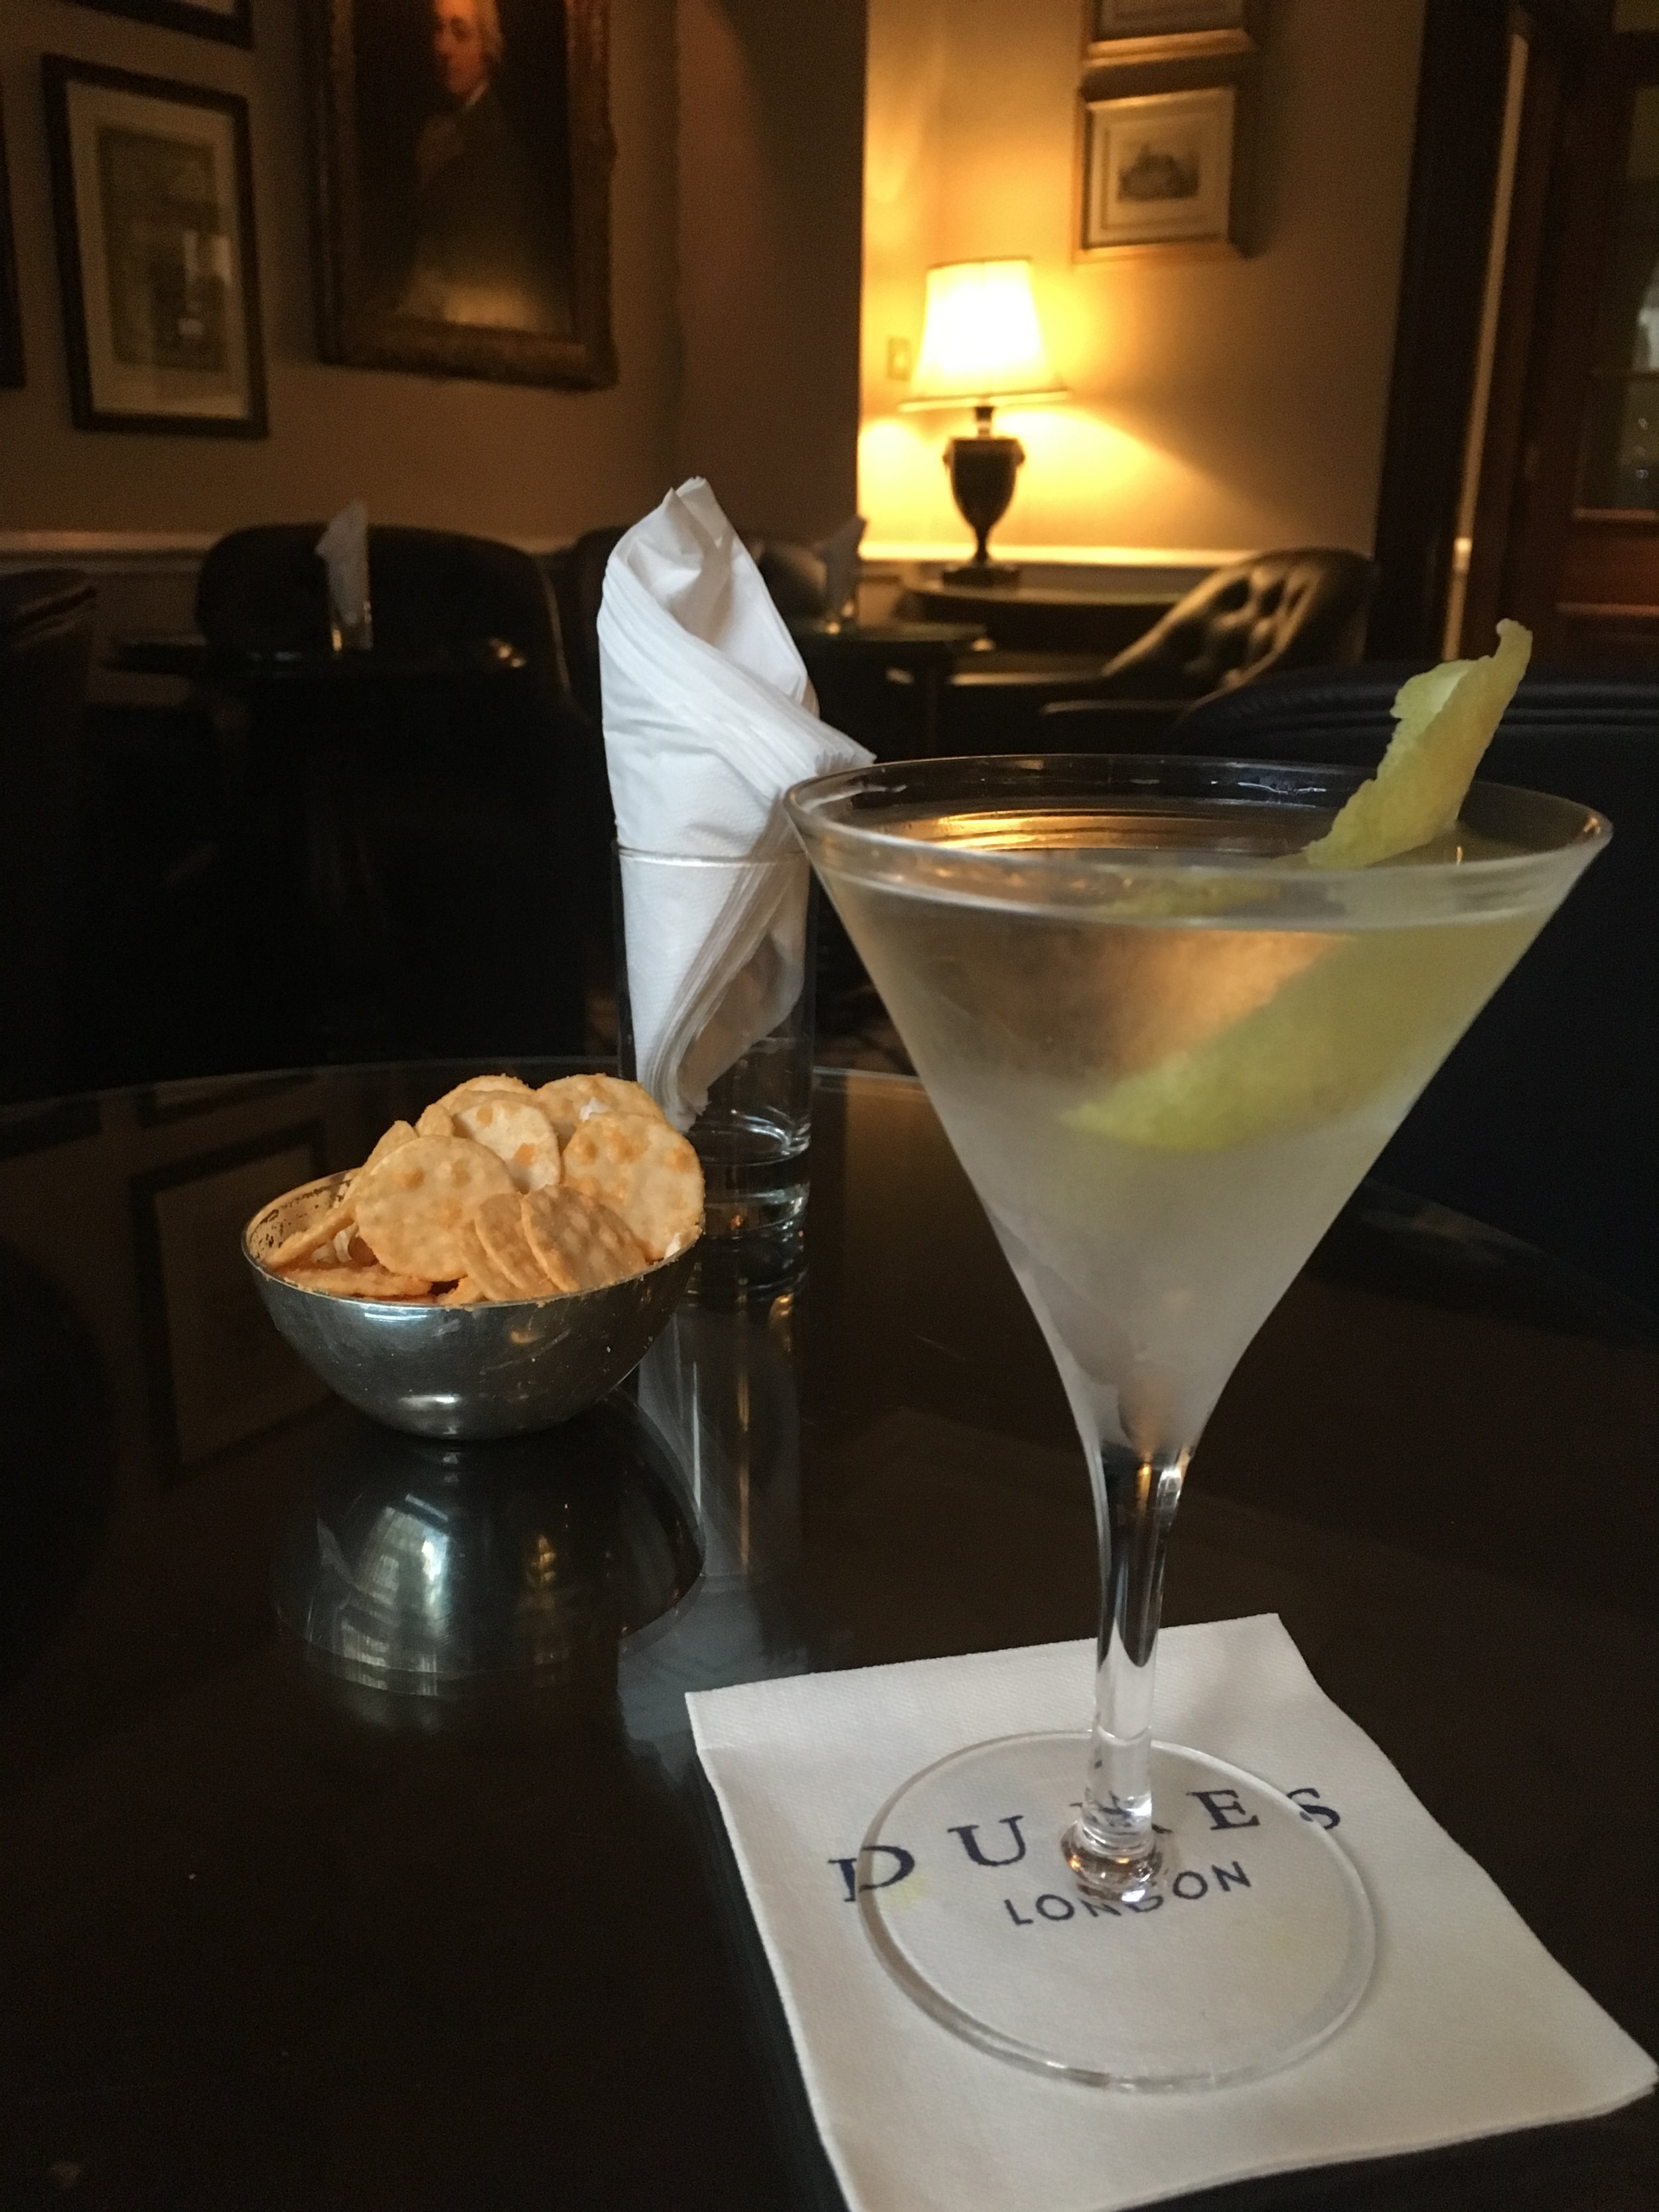 A little moderate abstention makes The Best Martini In The World all the more delicious!